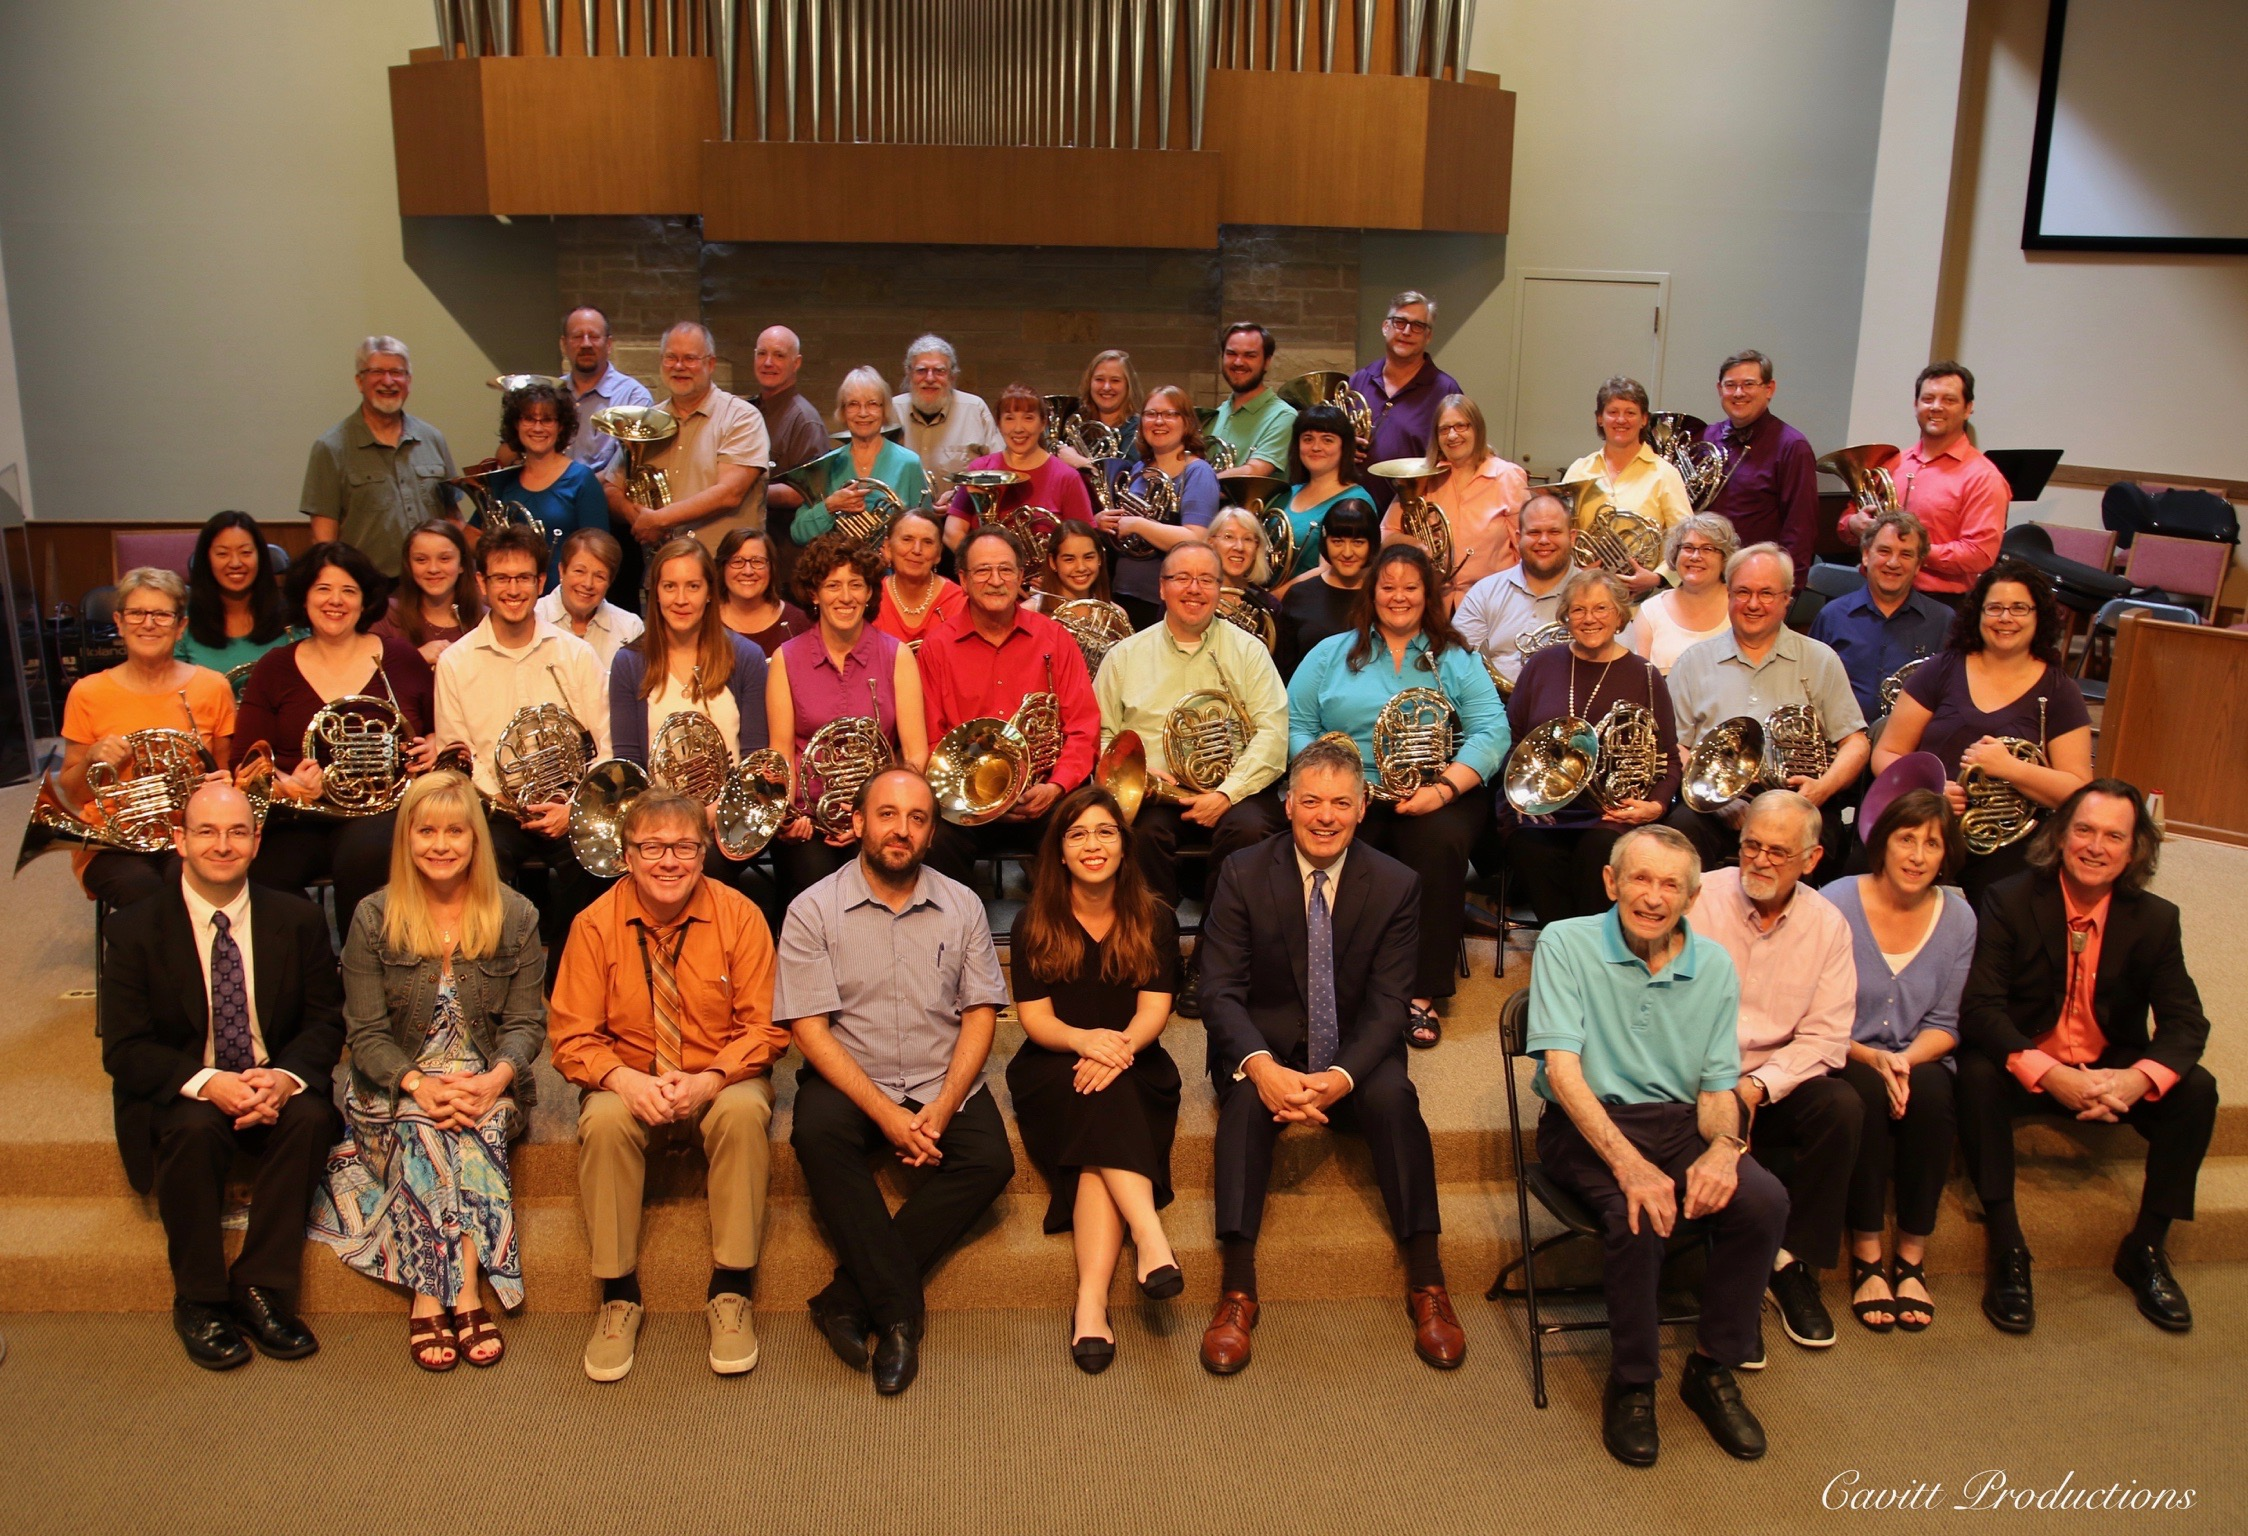 Members of the Twin Cities Horn Club with composers and current and former members of the Minnesota Orchestra horn section. Click for larger view. Photograph by  www.cavittproductions.com